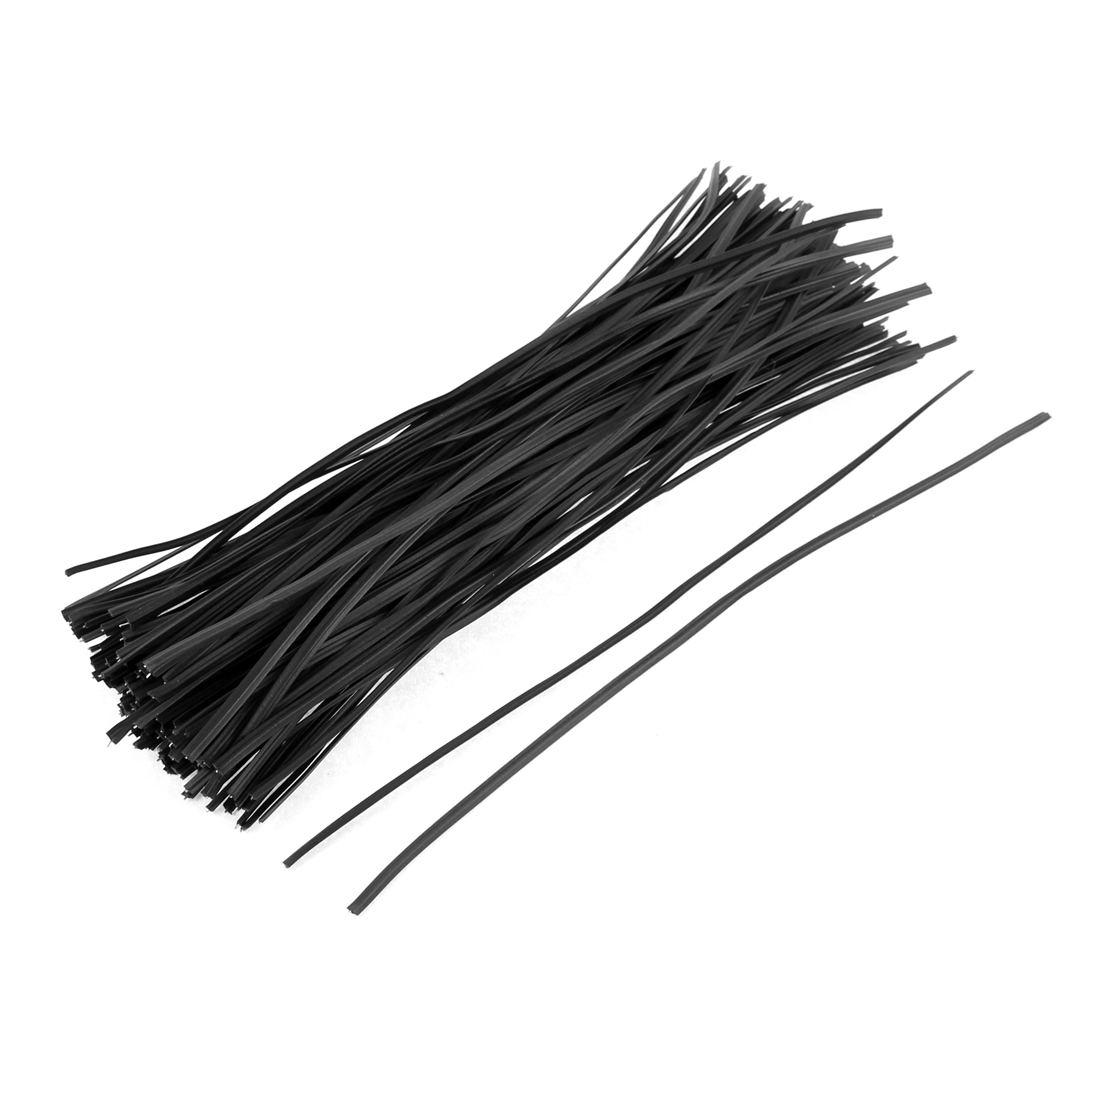 130pcs 200mm x 3mm Black Plastic Coated Metal Cord Data Cable Binding Bags Packaging Wire Twist Ties